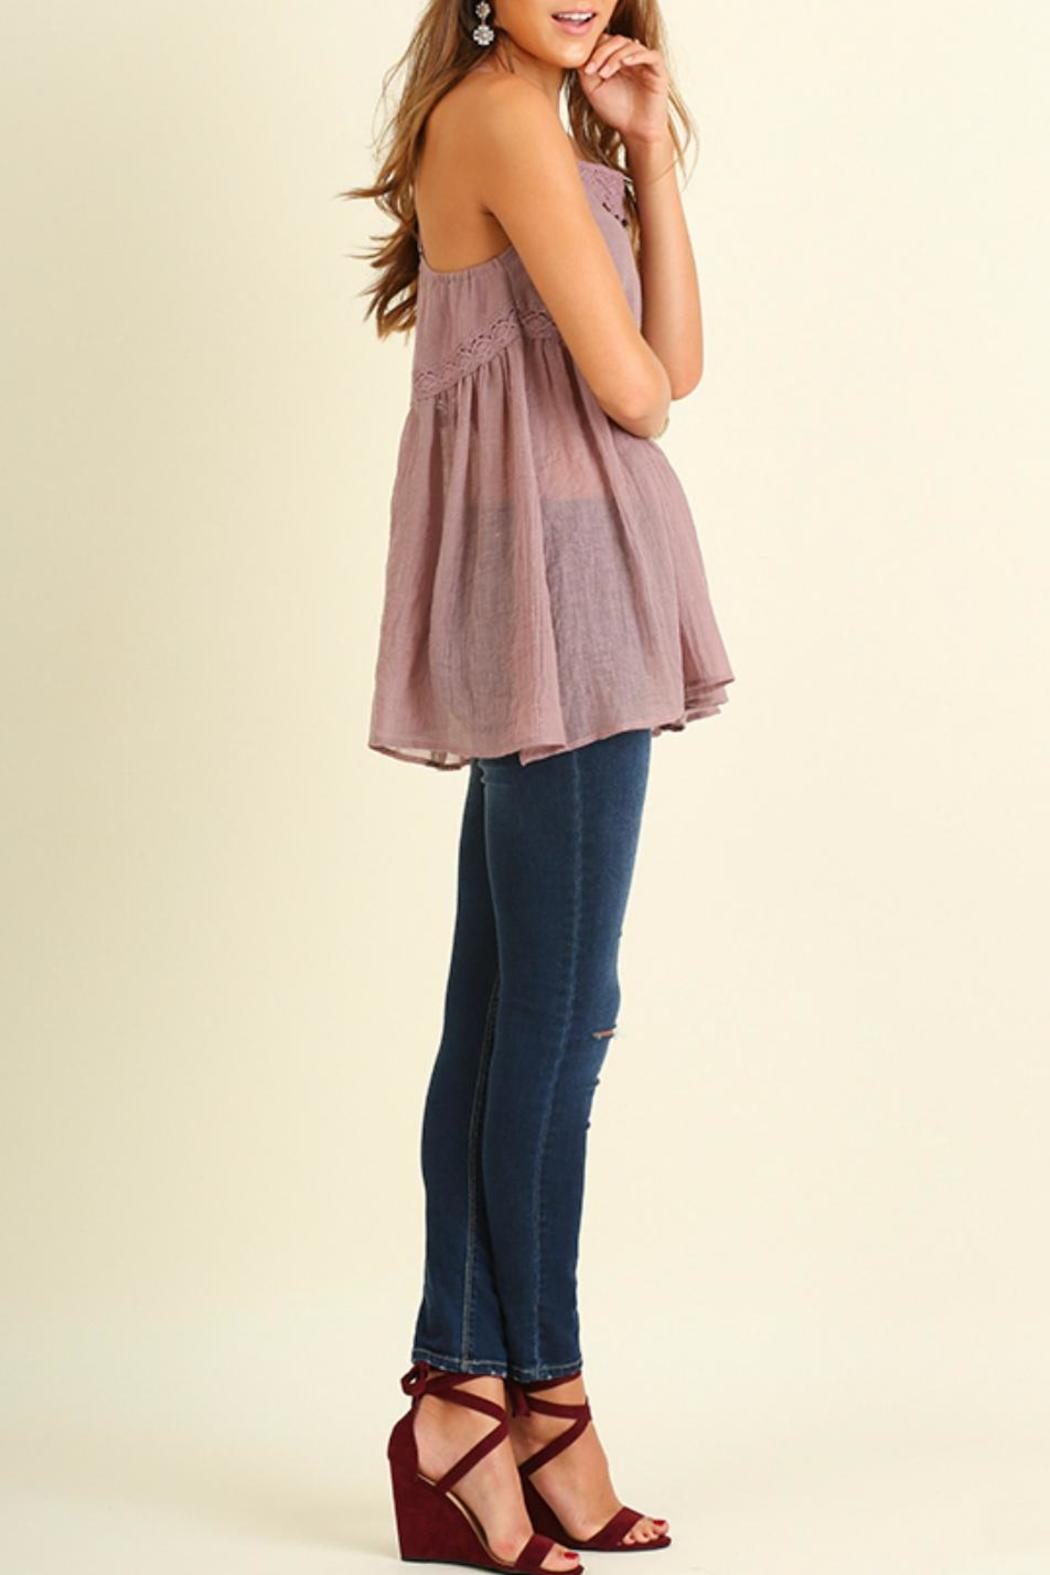 Umgee USA Strapless Mauve Top - Side Cropped Image